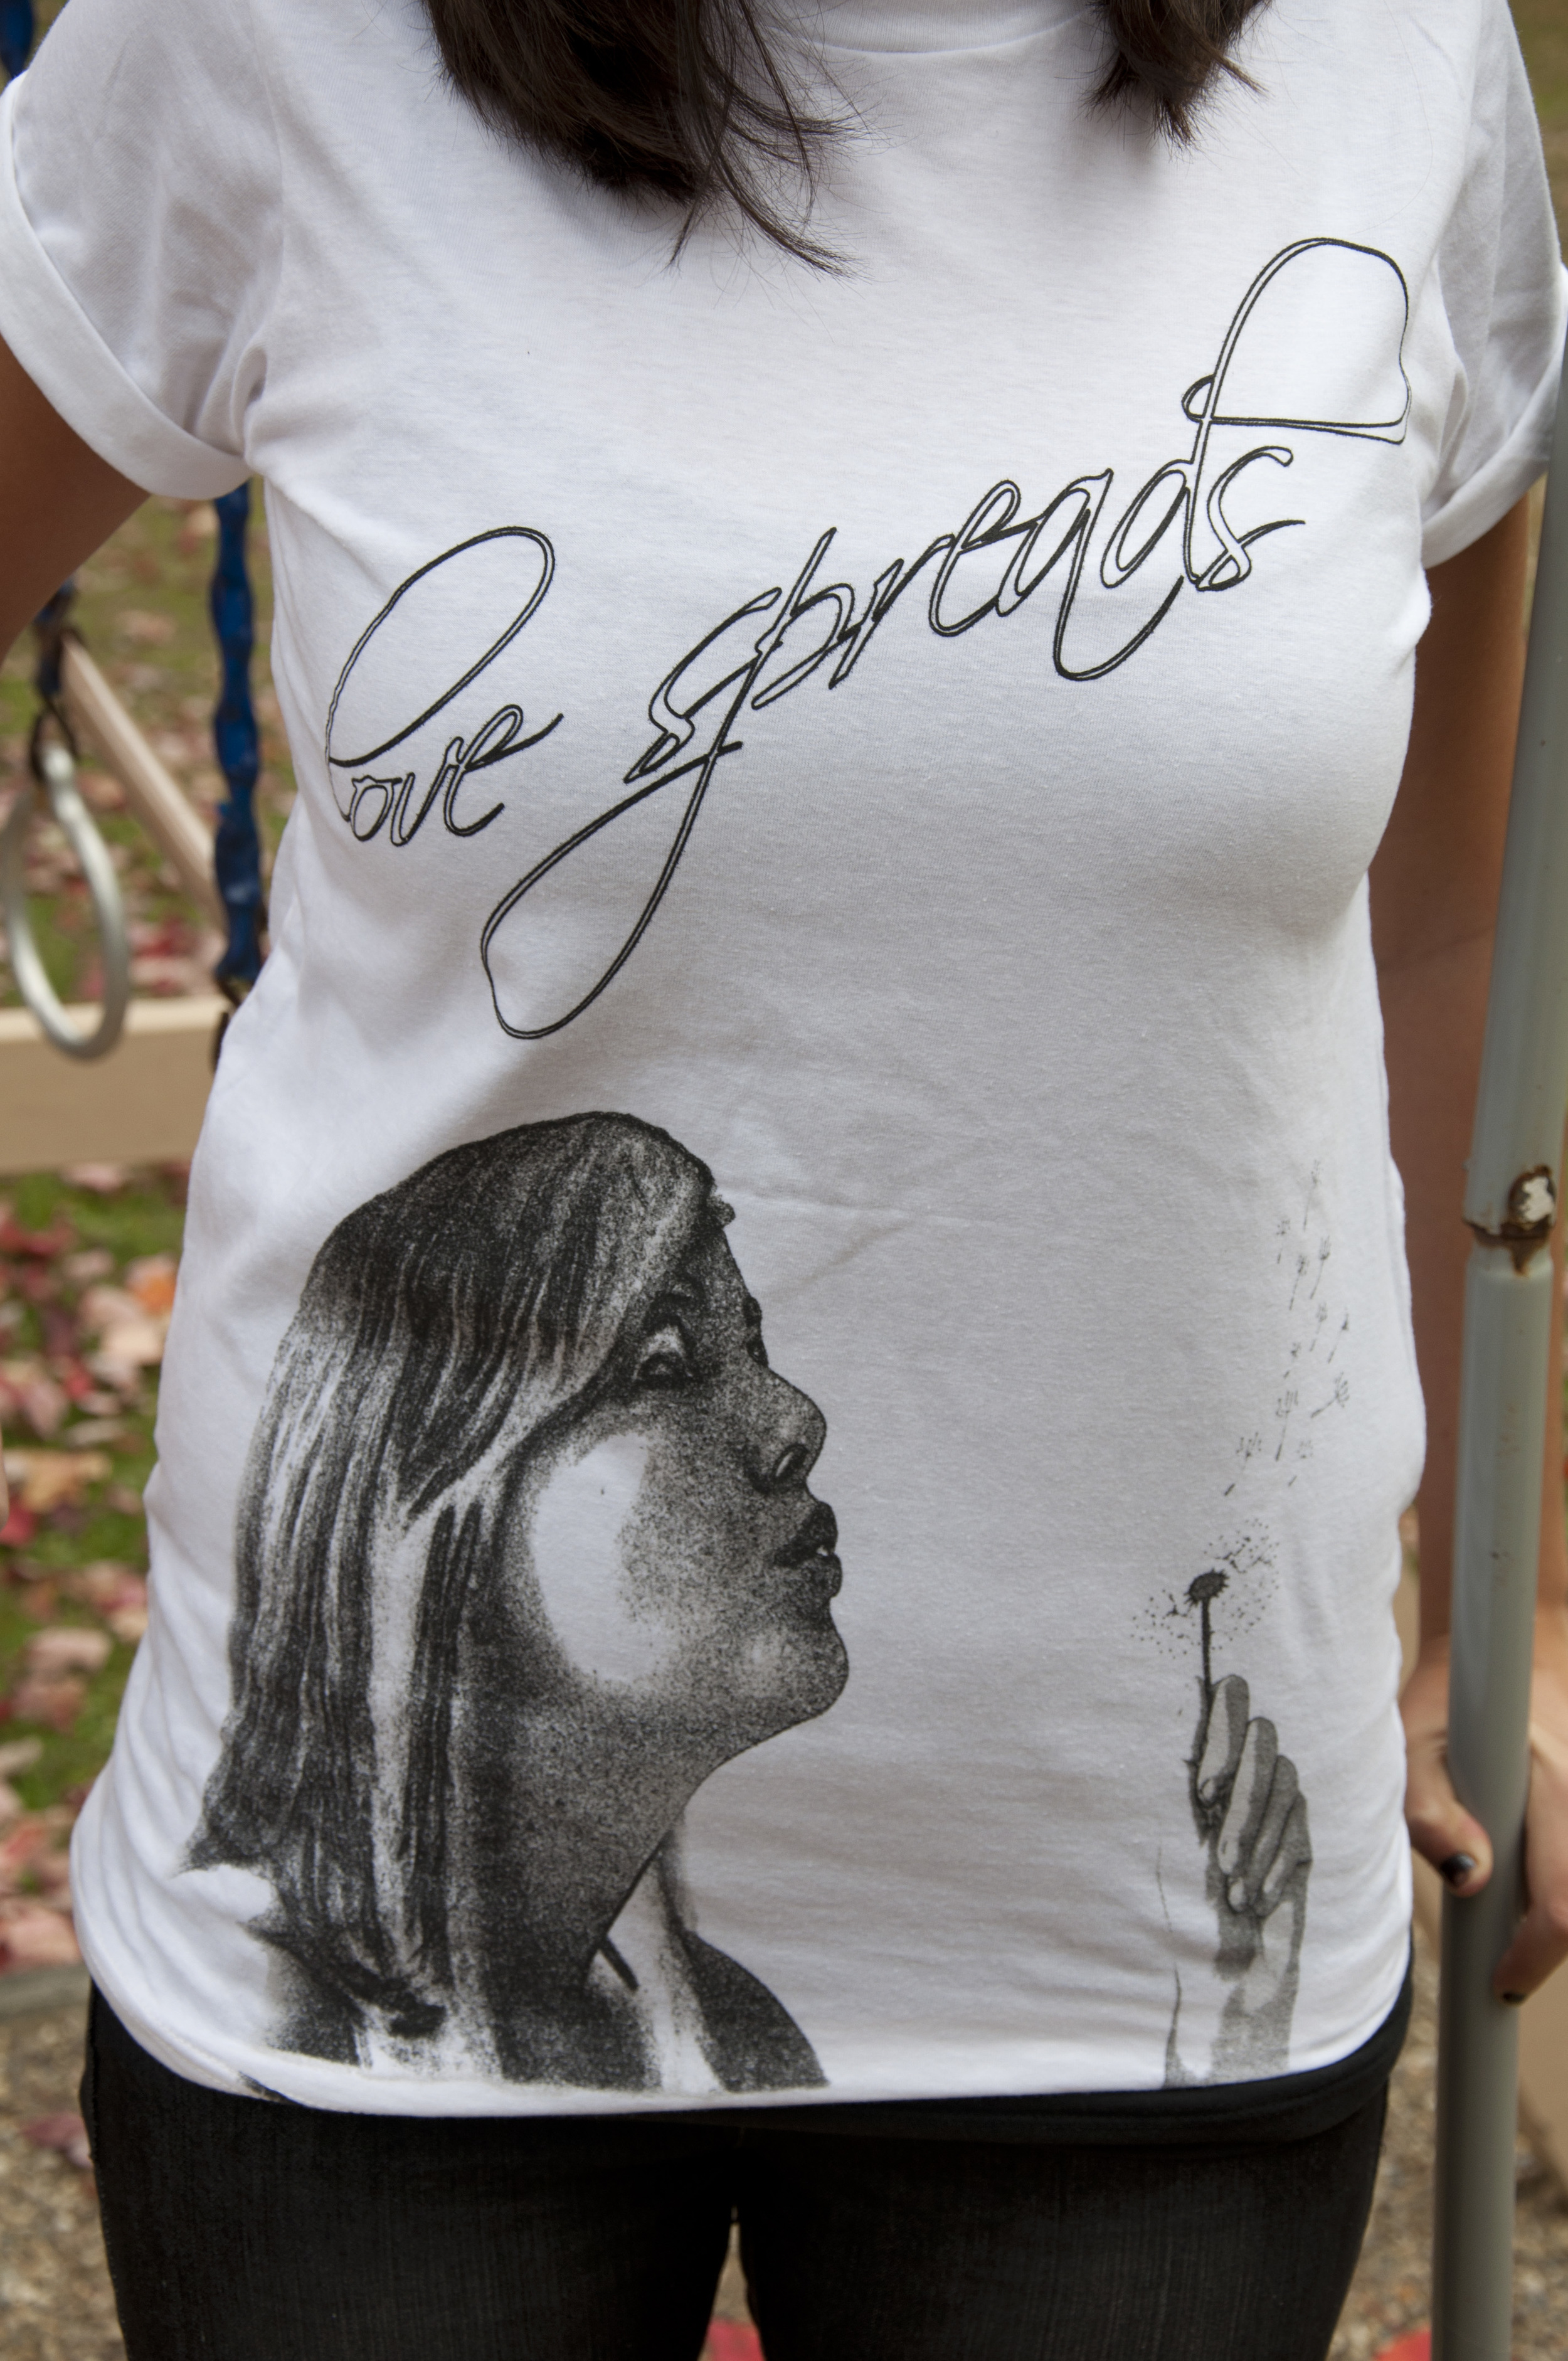 CREATE IN INK CLOTHING SHIRT DESIGN #4